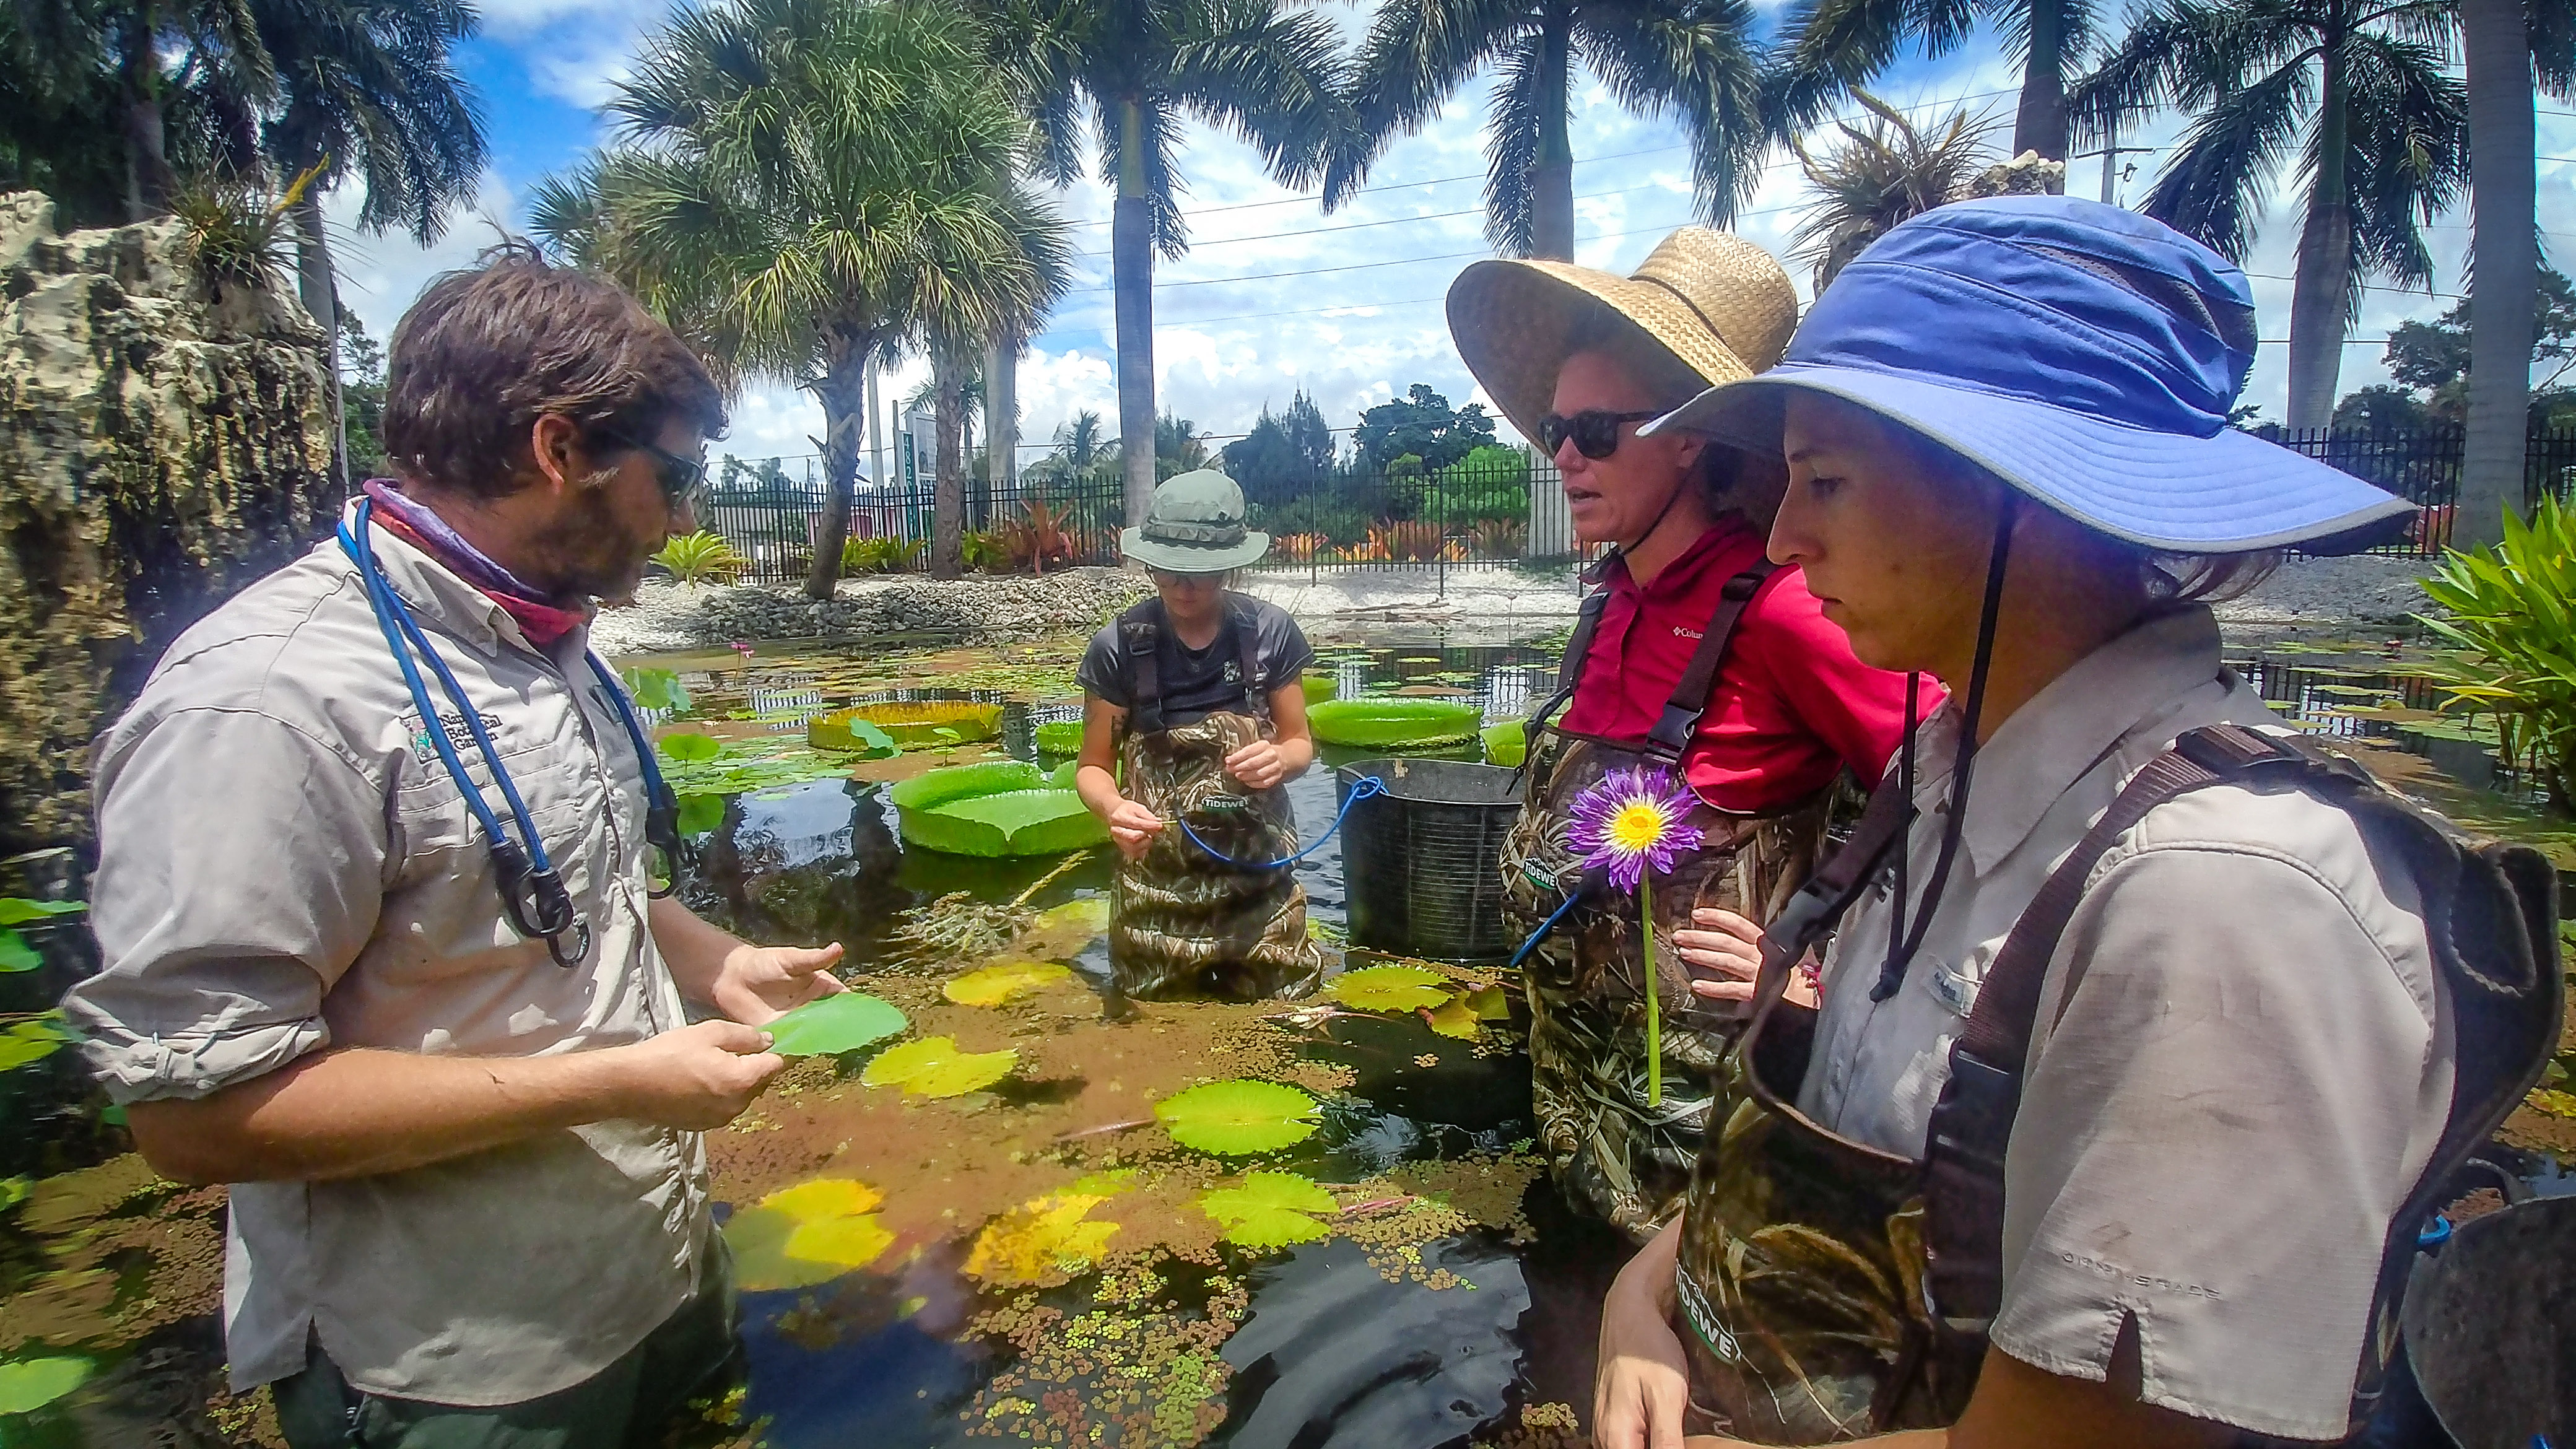 Aquatic Areas Manager Danny Cox demonstrates Waterlily care to Gardeners at Naples Botanical Garden